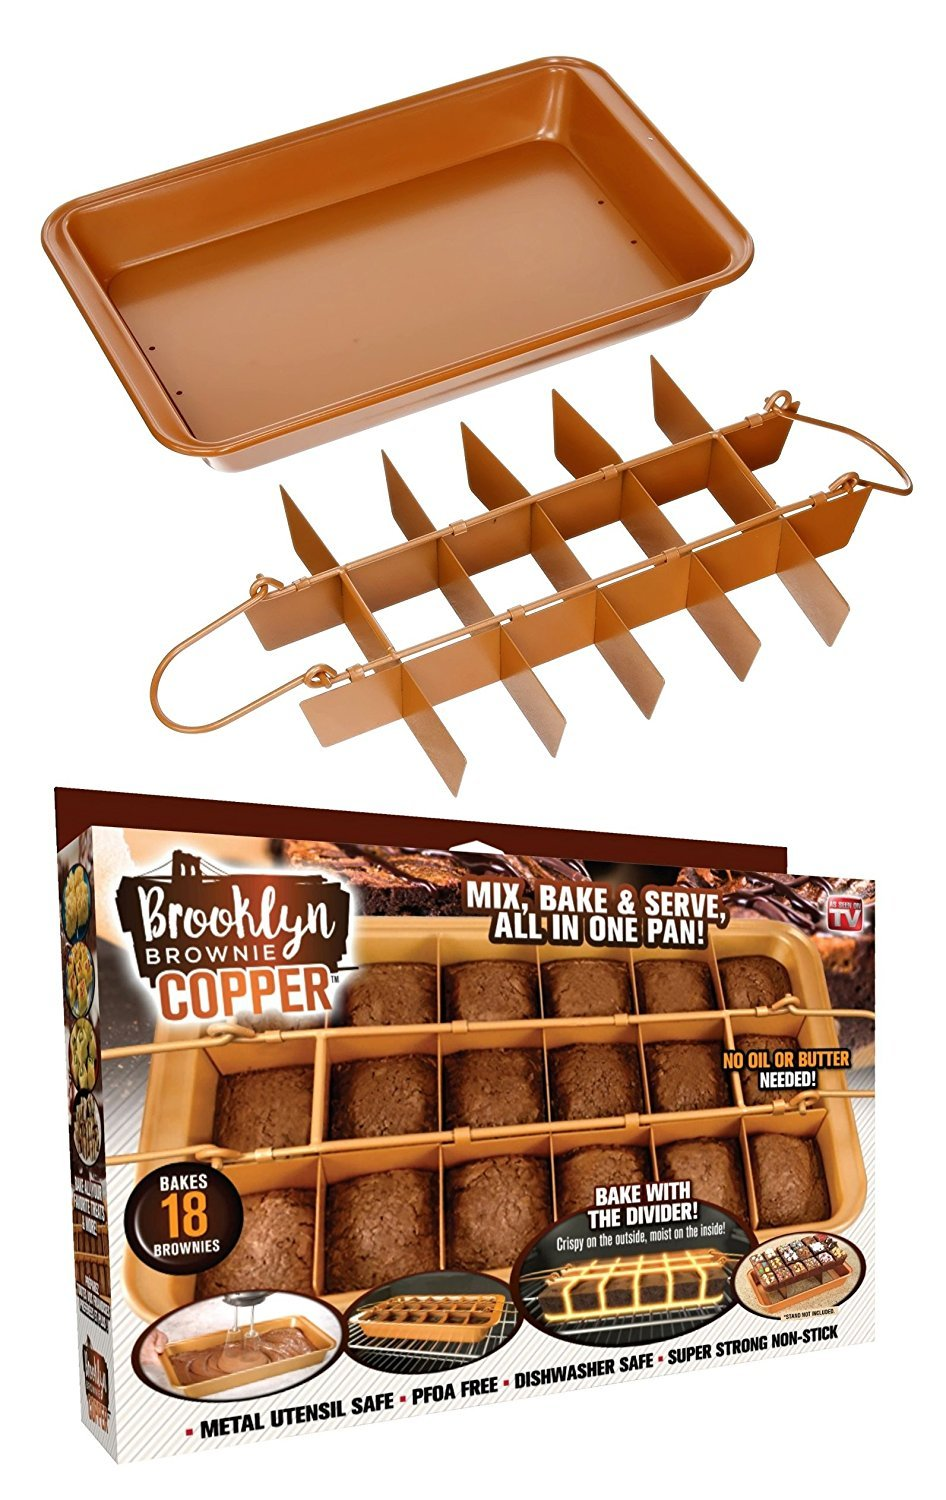 Brooklyn Brownie Copper by Gotham Steel Nonstick Baking Pan with Built-in Slicer, Ensures Perfect Crispy Edges, Metal Utensil and Dishwasher Safe 1491